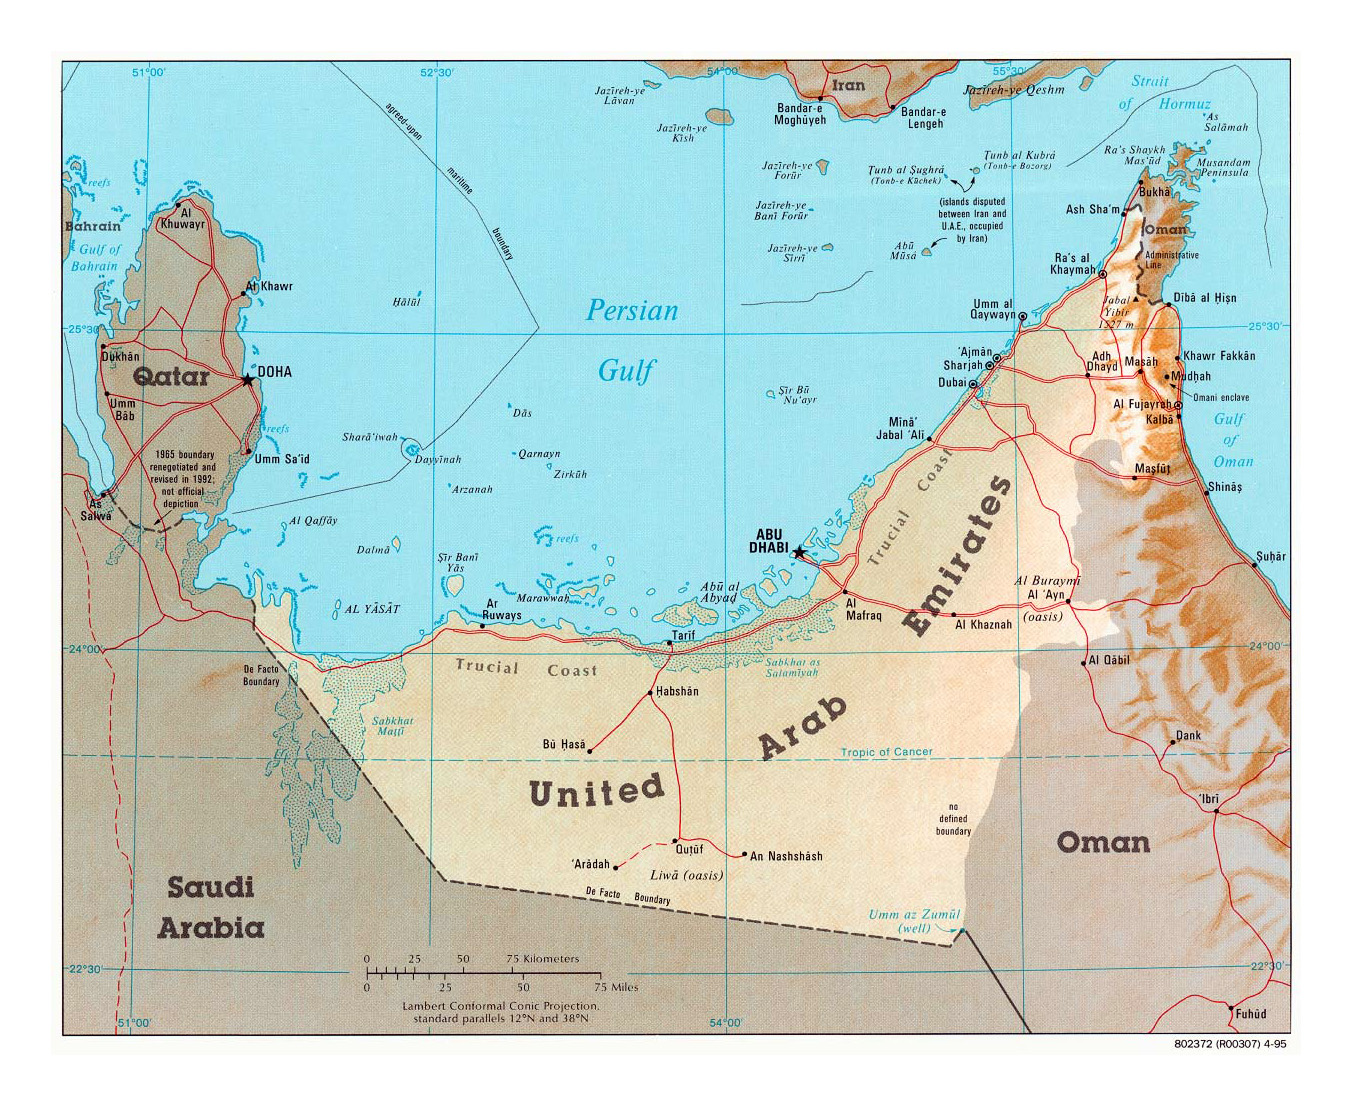 Detailed political map of UAE with relief roads and cities 1995